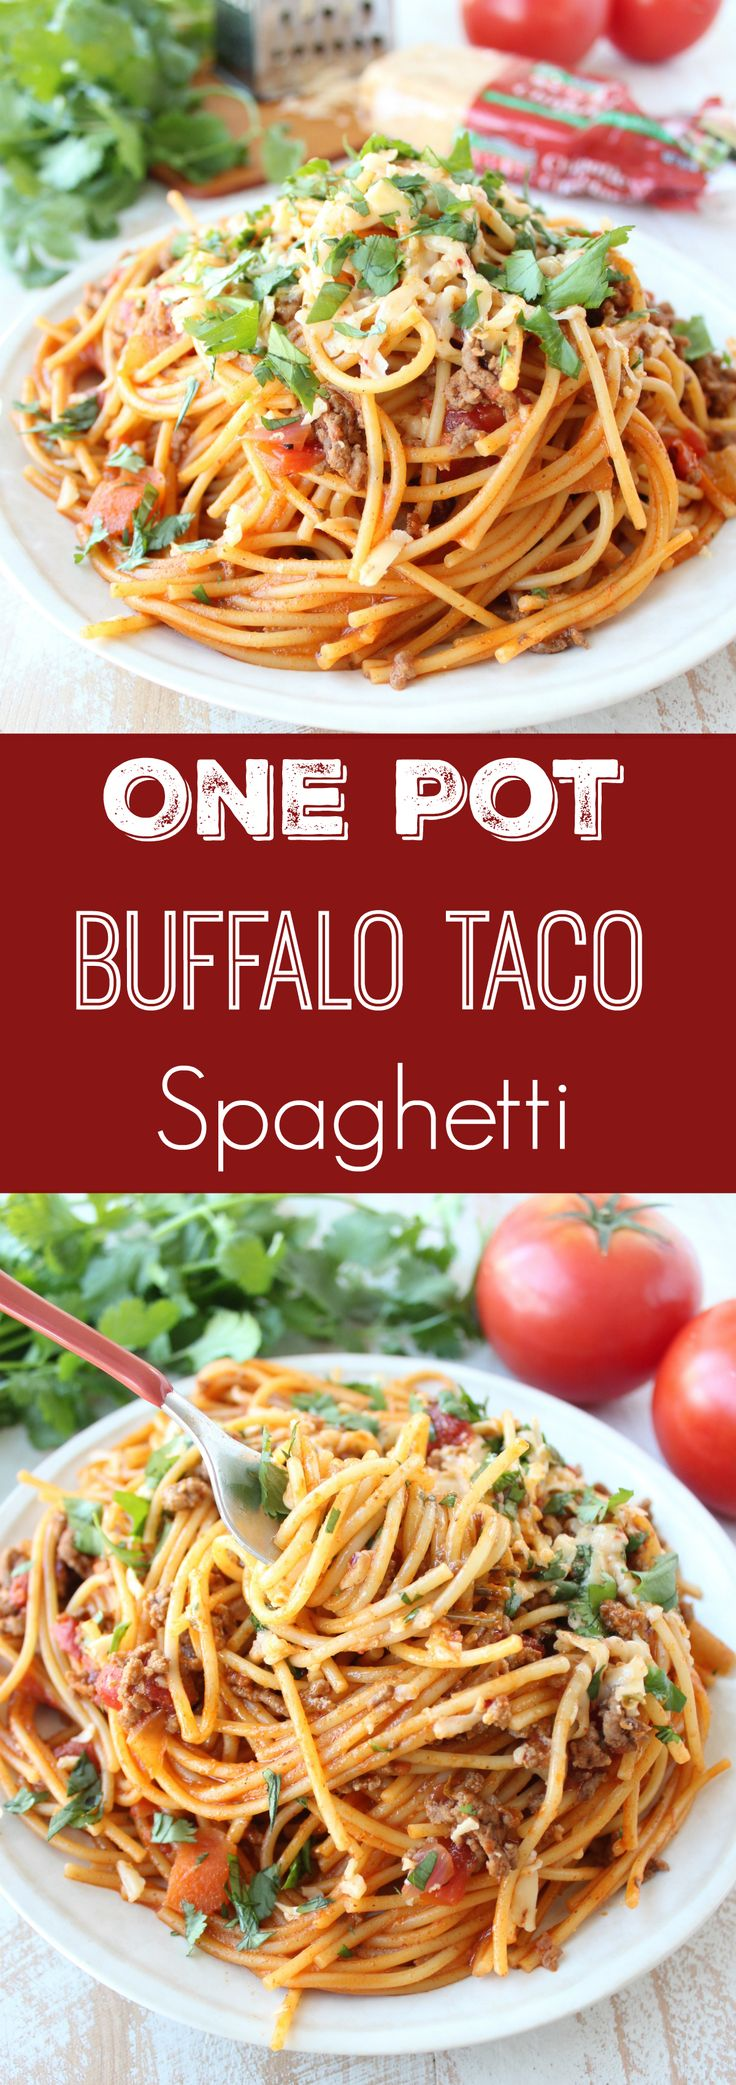 In one pot and under 30 minutes, make this scrumptious Buffalo Taco Spaghetti recipe, and serve it up on World Market Muir Plates! #WorldMarketTribe